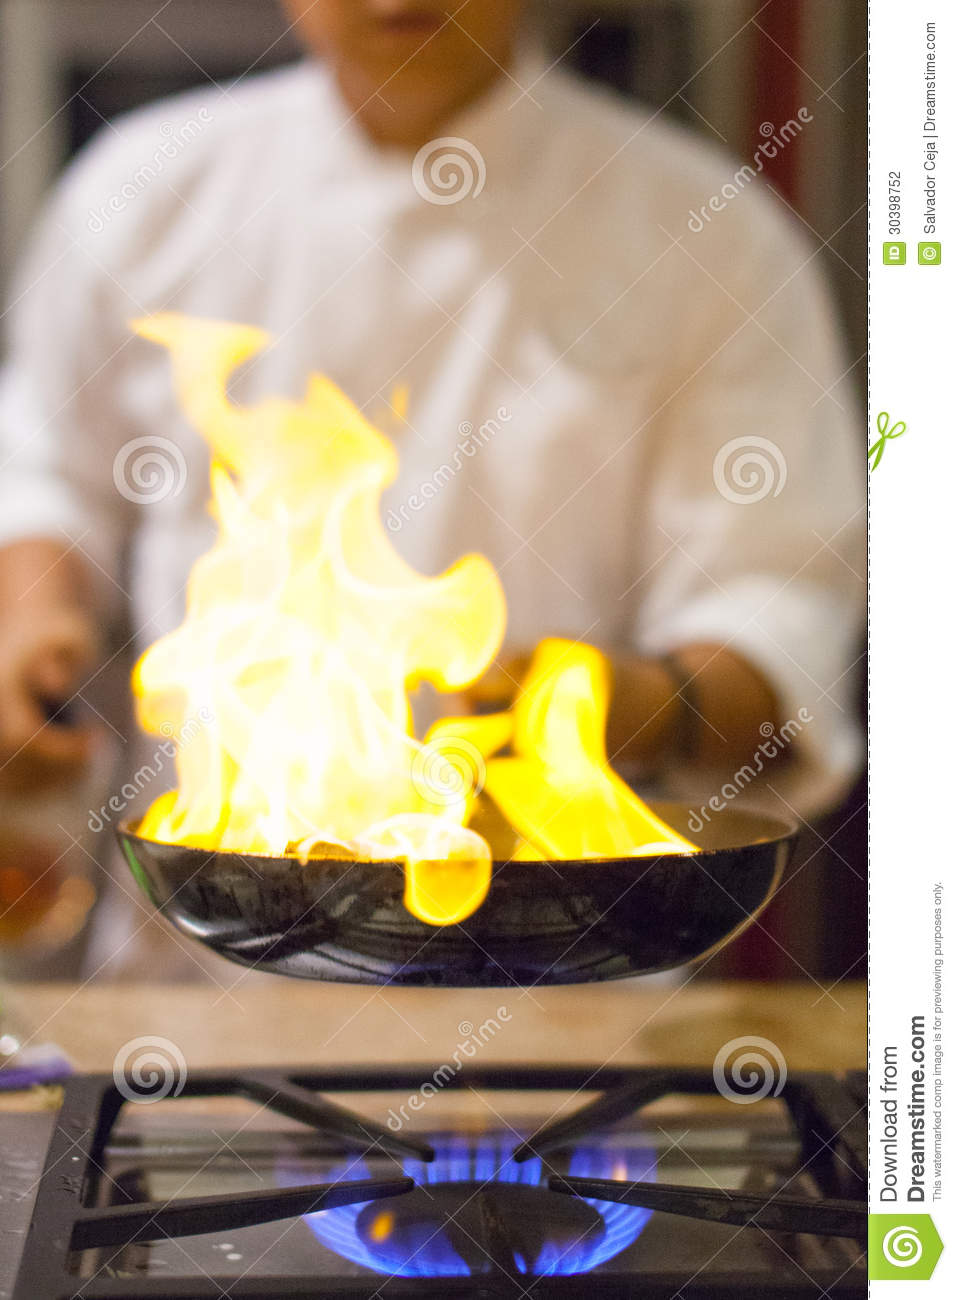 Chef Cooking Stock Photo Image Of Person Burner Food 30398752